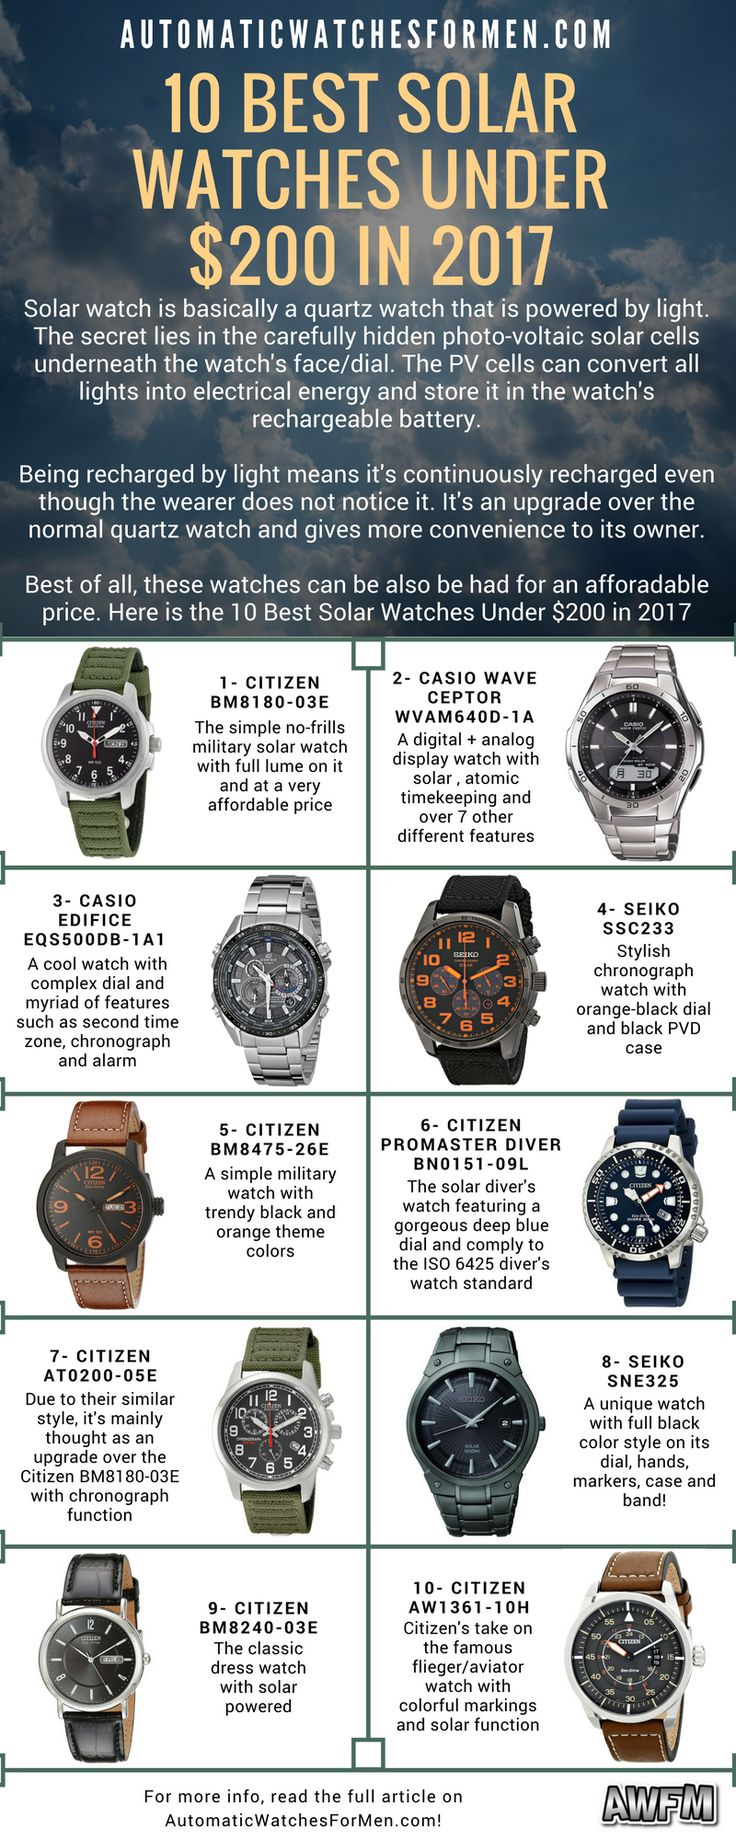 Hi guys! I'm sure you guys must have known about solar watches right? - the very convenient watch that can recharge itself from being exposed to lights.   Here is the list that I've compiled on the 10 Best Solar Watches Under $200 in 2017. Let me know what you guys think about it =) >>>  https://automaticwatchesformen.com/10-best-solar-watches-under-200-in-2017